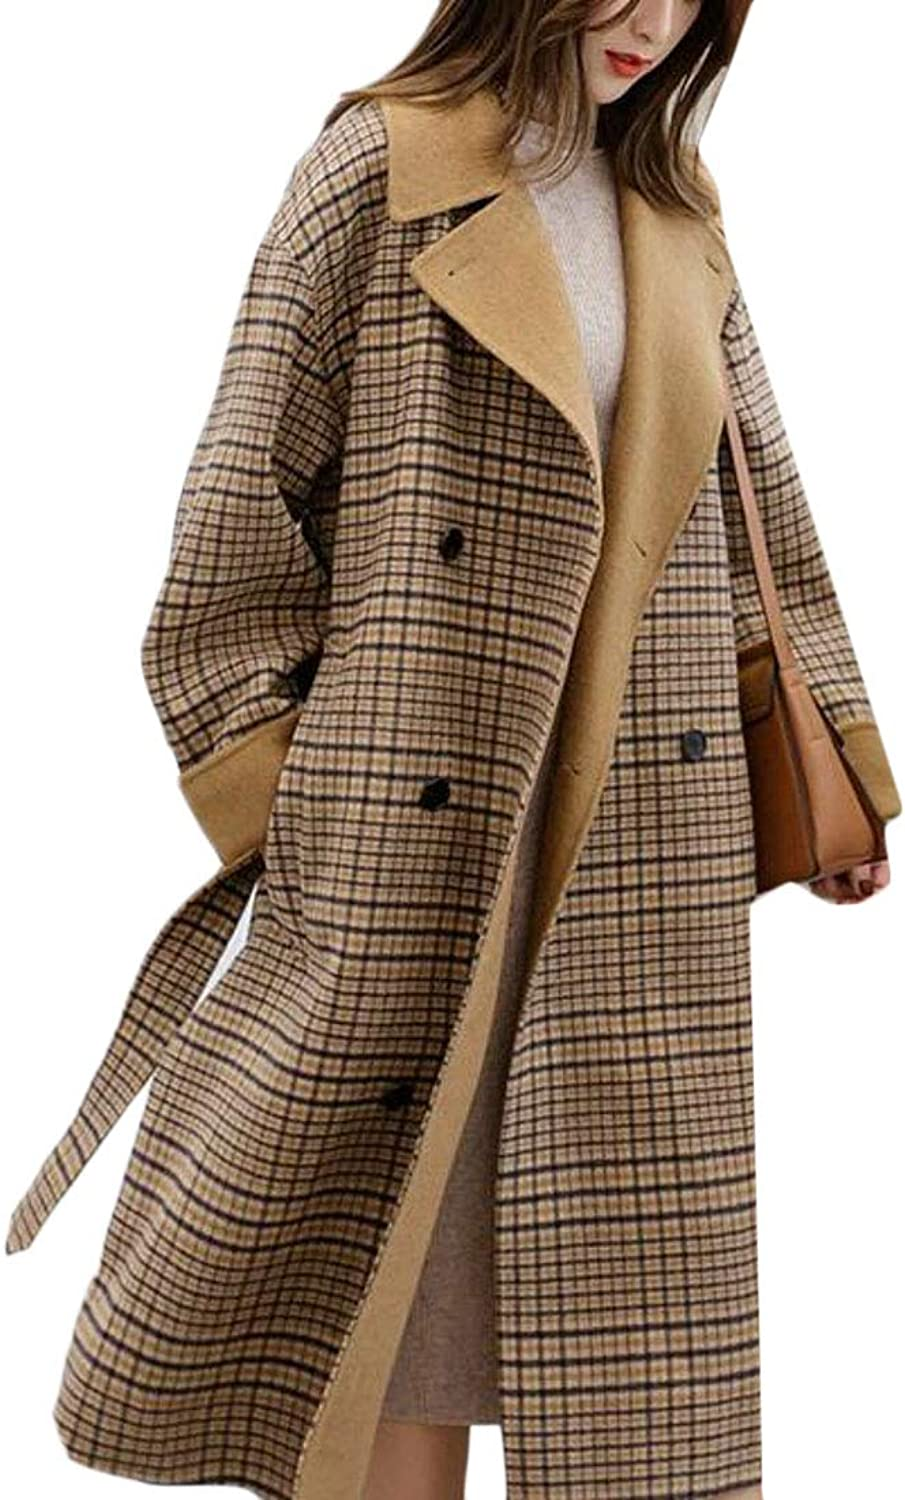 XiaoTianXinWomen XTX Women's Winter Wool Blend Loose Plus Size Plaid Long Trench Pea Coat Jacket Overcoat